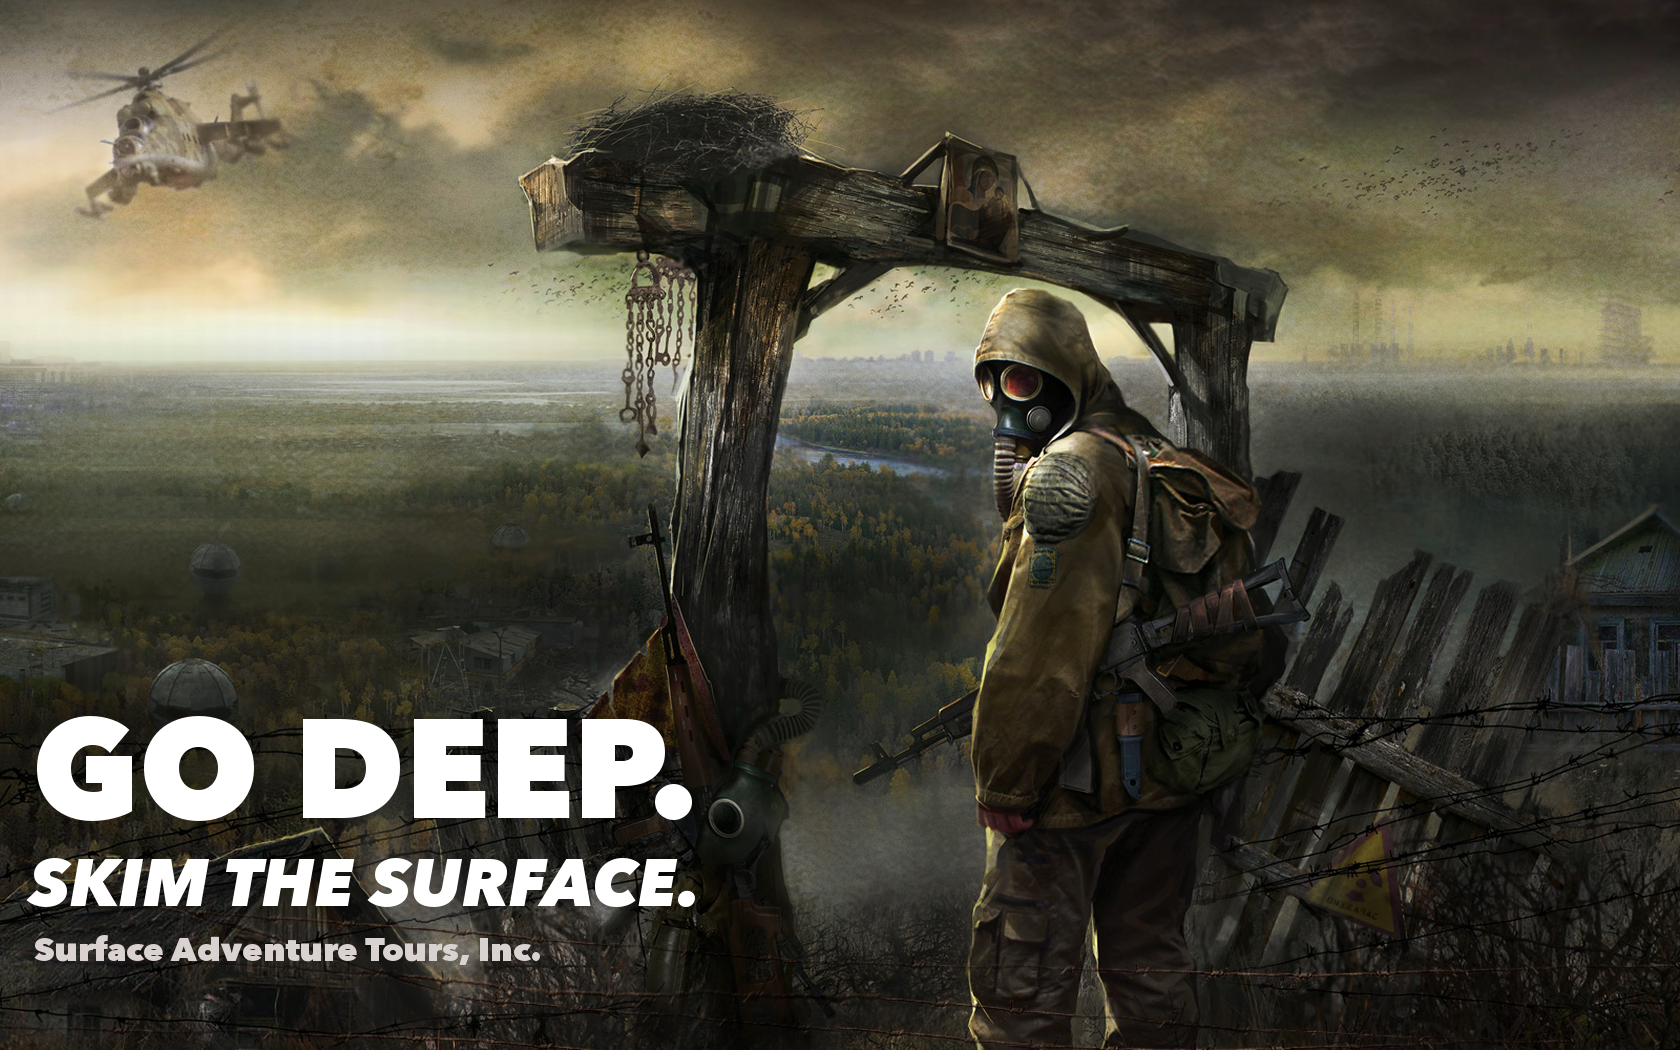 Surface_Ad_Go_Deep_Skim_the_Surface.png